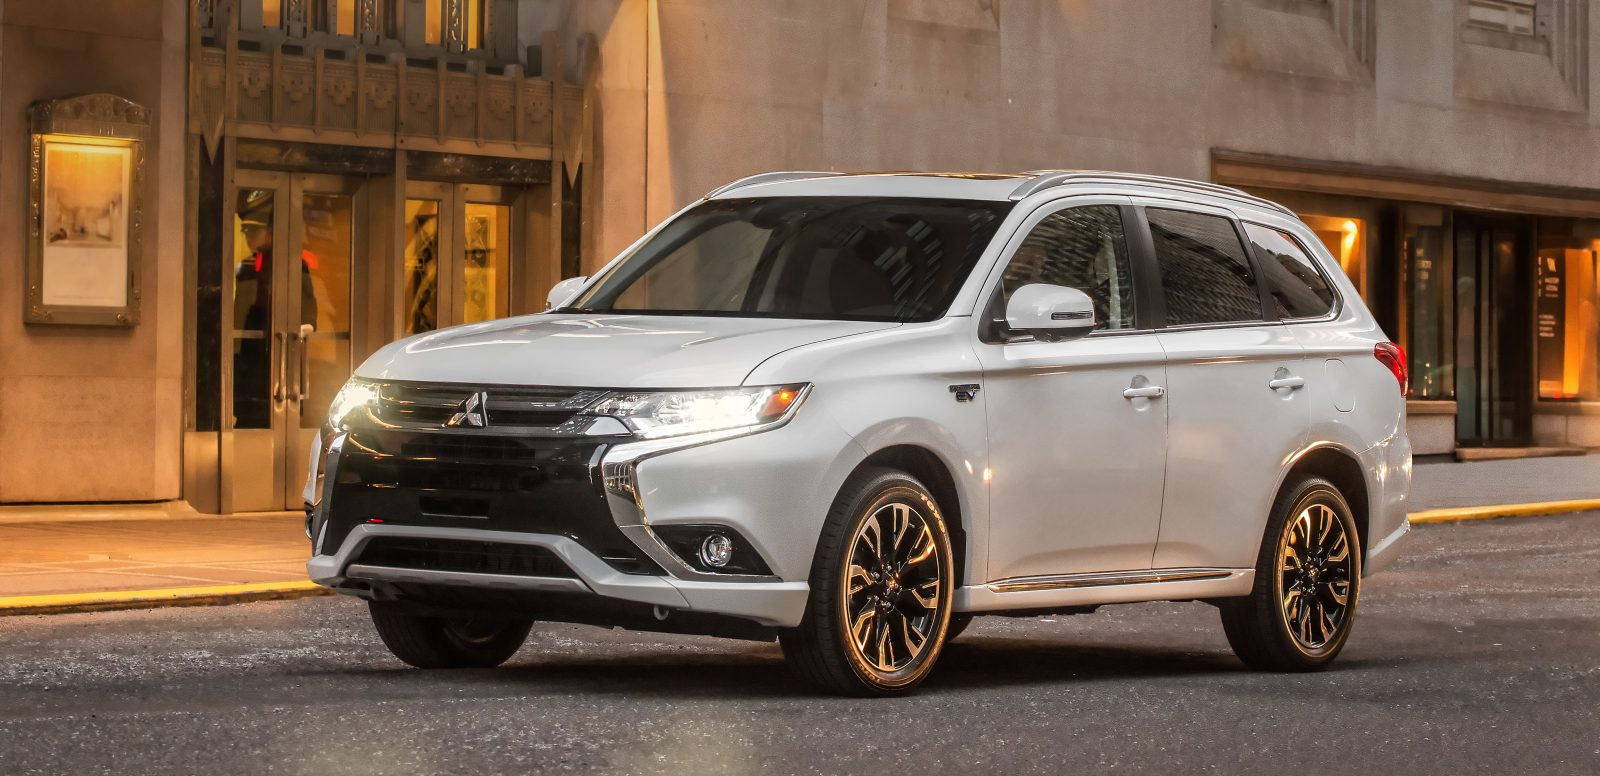 Mitsubishi debuts the Outlander PHEV in the US with upcoming launch